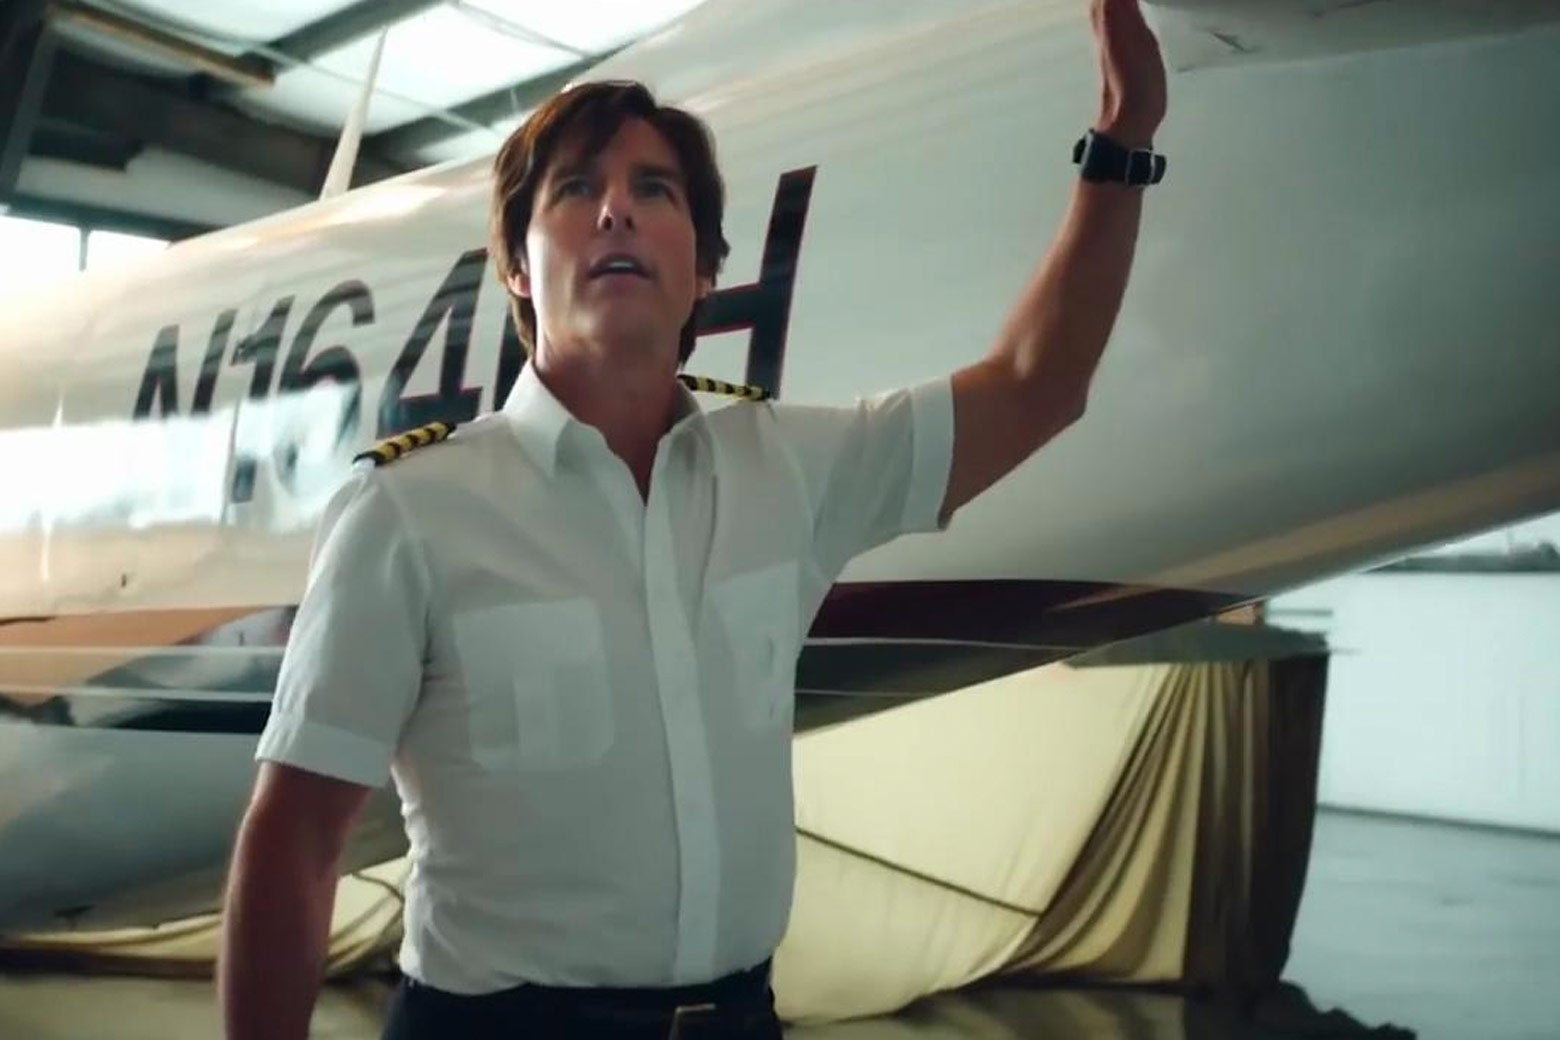 Tom Cruise in American Made.